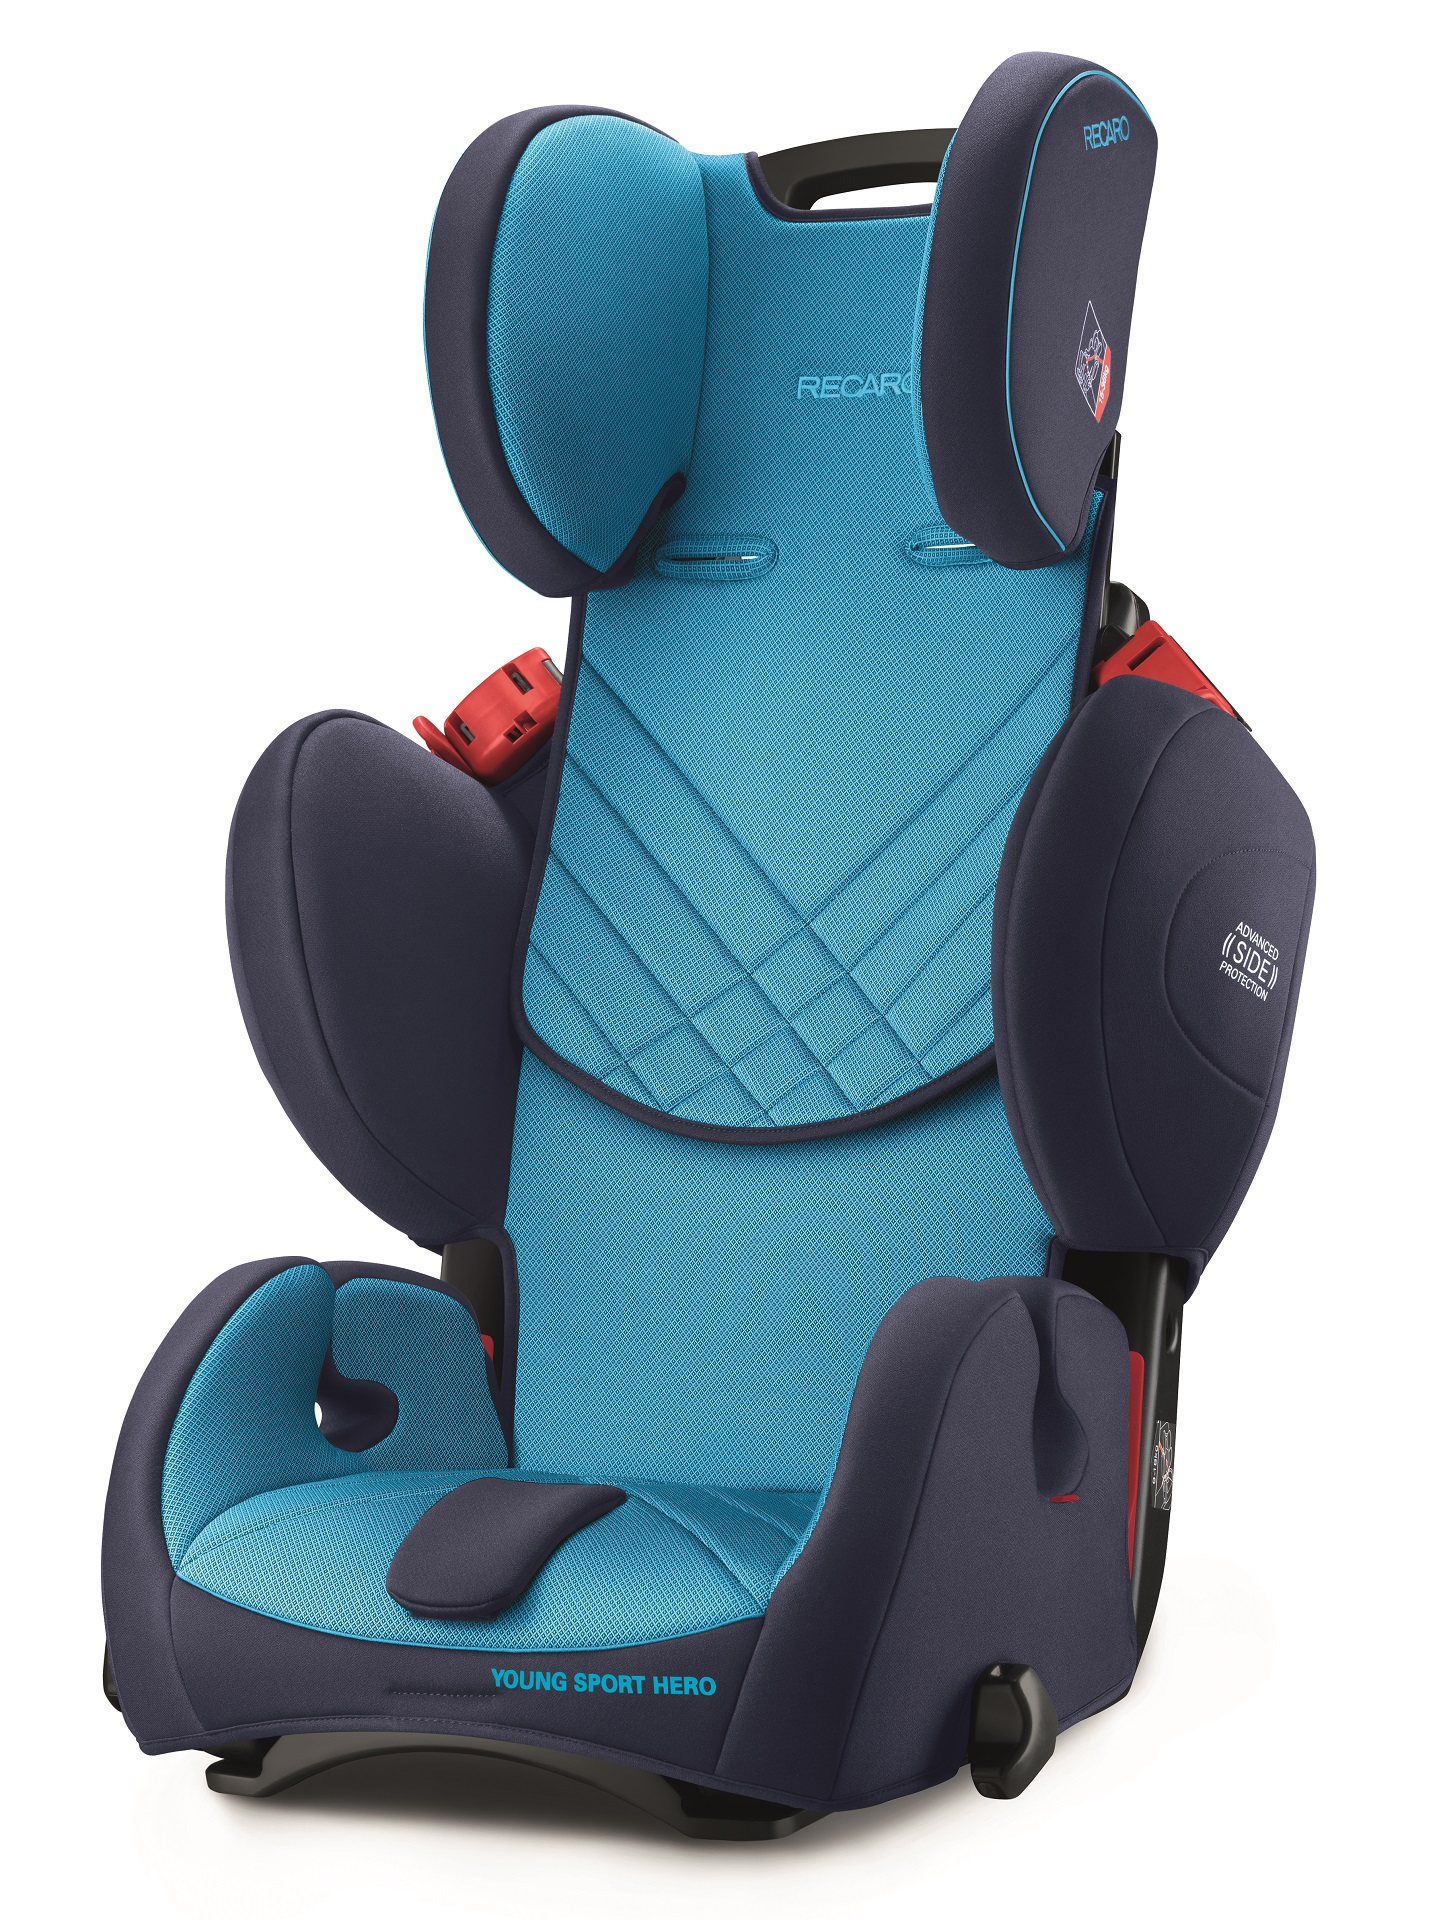 Recaro Child Car Seat Young Sport Hero Racing Red 2018